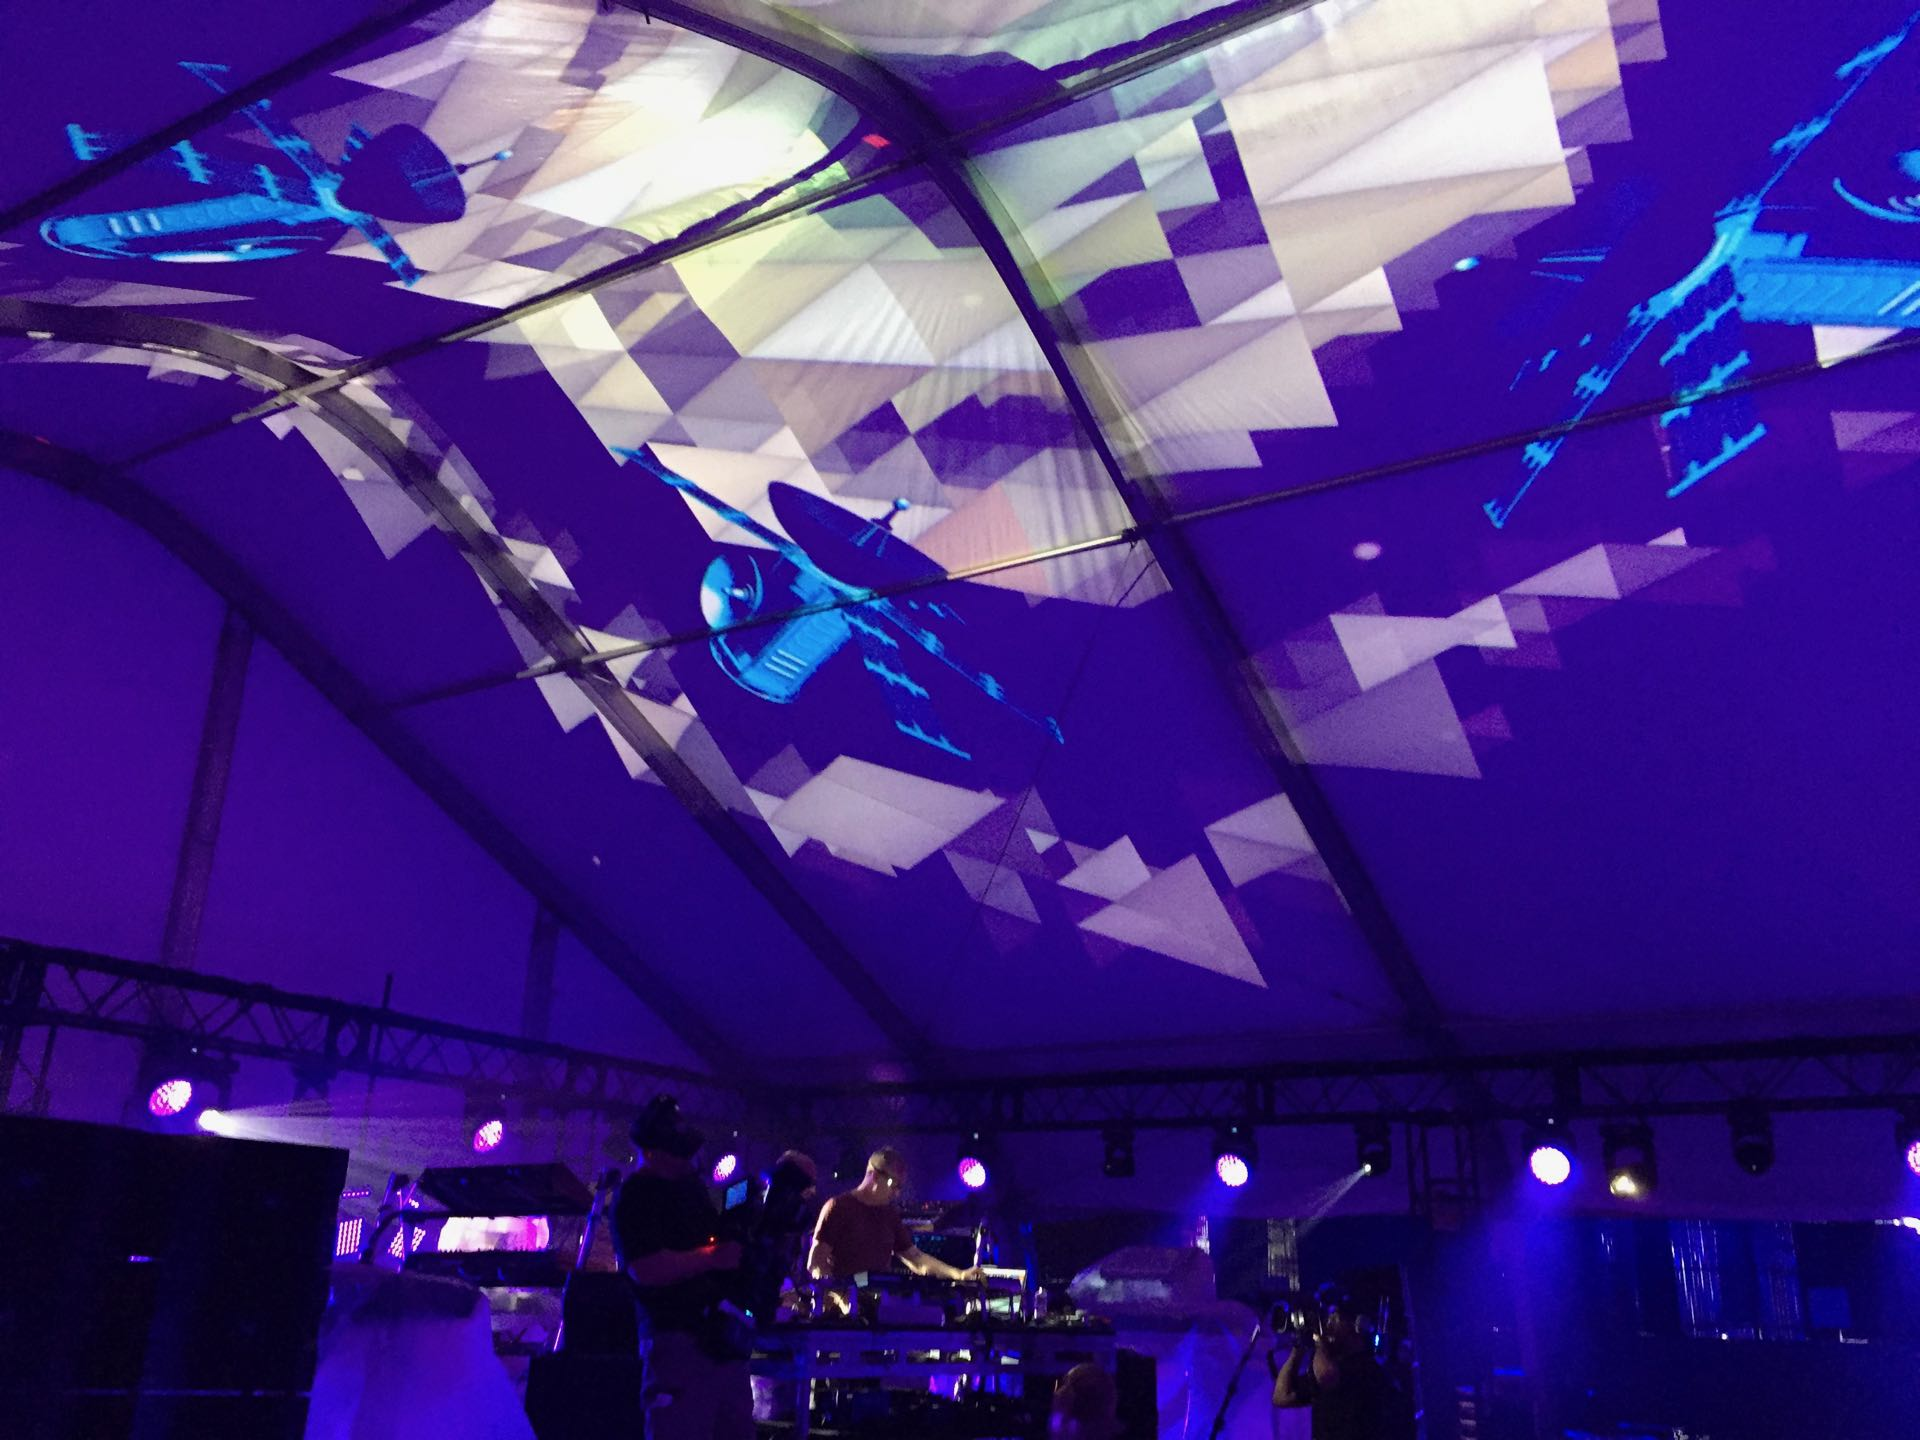 Electronic Music Awards 2017 - Projection Mapping